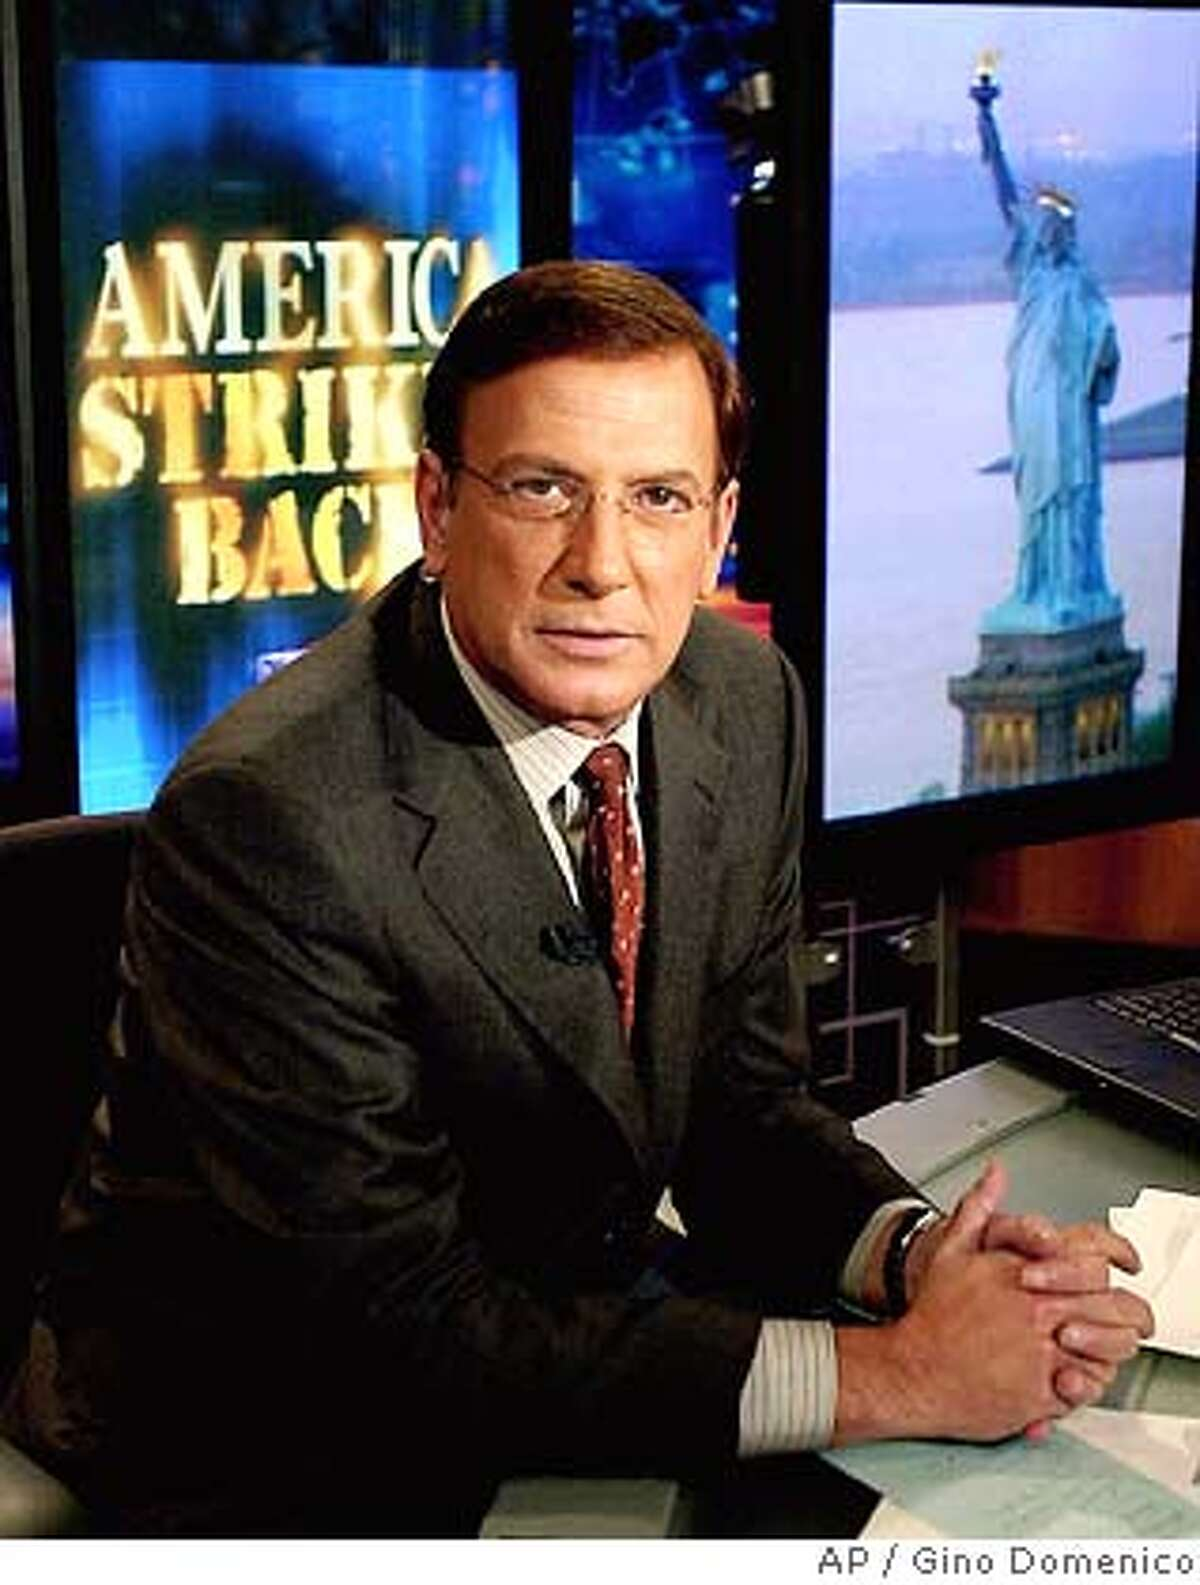 **FILE**CNN news anchor Aaron Brown poses in one of the all-news network's New York studios Oct. 18, 2001. Brown, once one of CNN's most prominent anchors, is leaving the network after a shakeup that gives his prime-time slot to rising star Anderson Cooper and expands it to two hours.(AP Photo/Gino Domenico) AN OCT 18 2001 FILE PHOTO